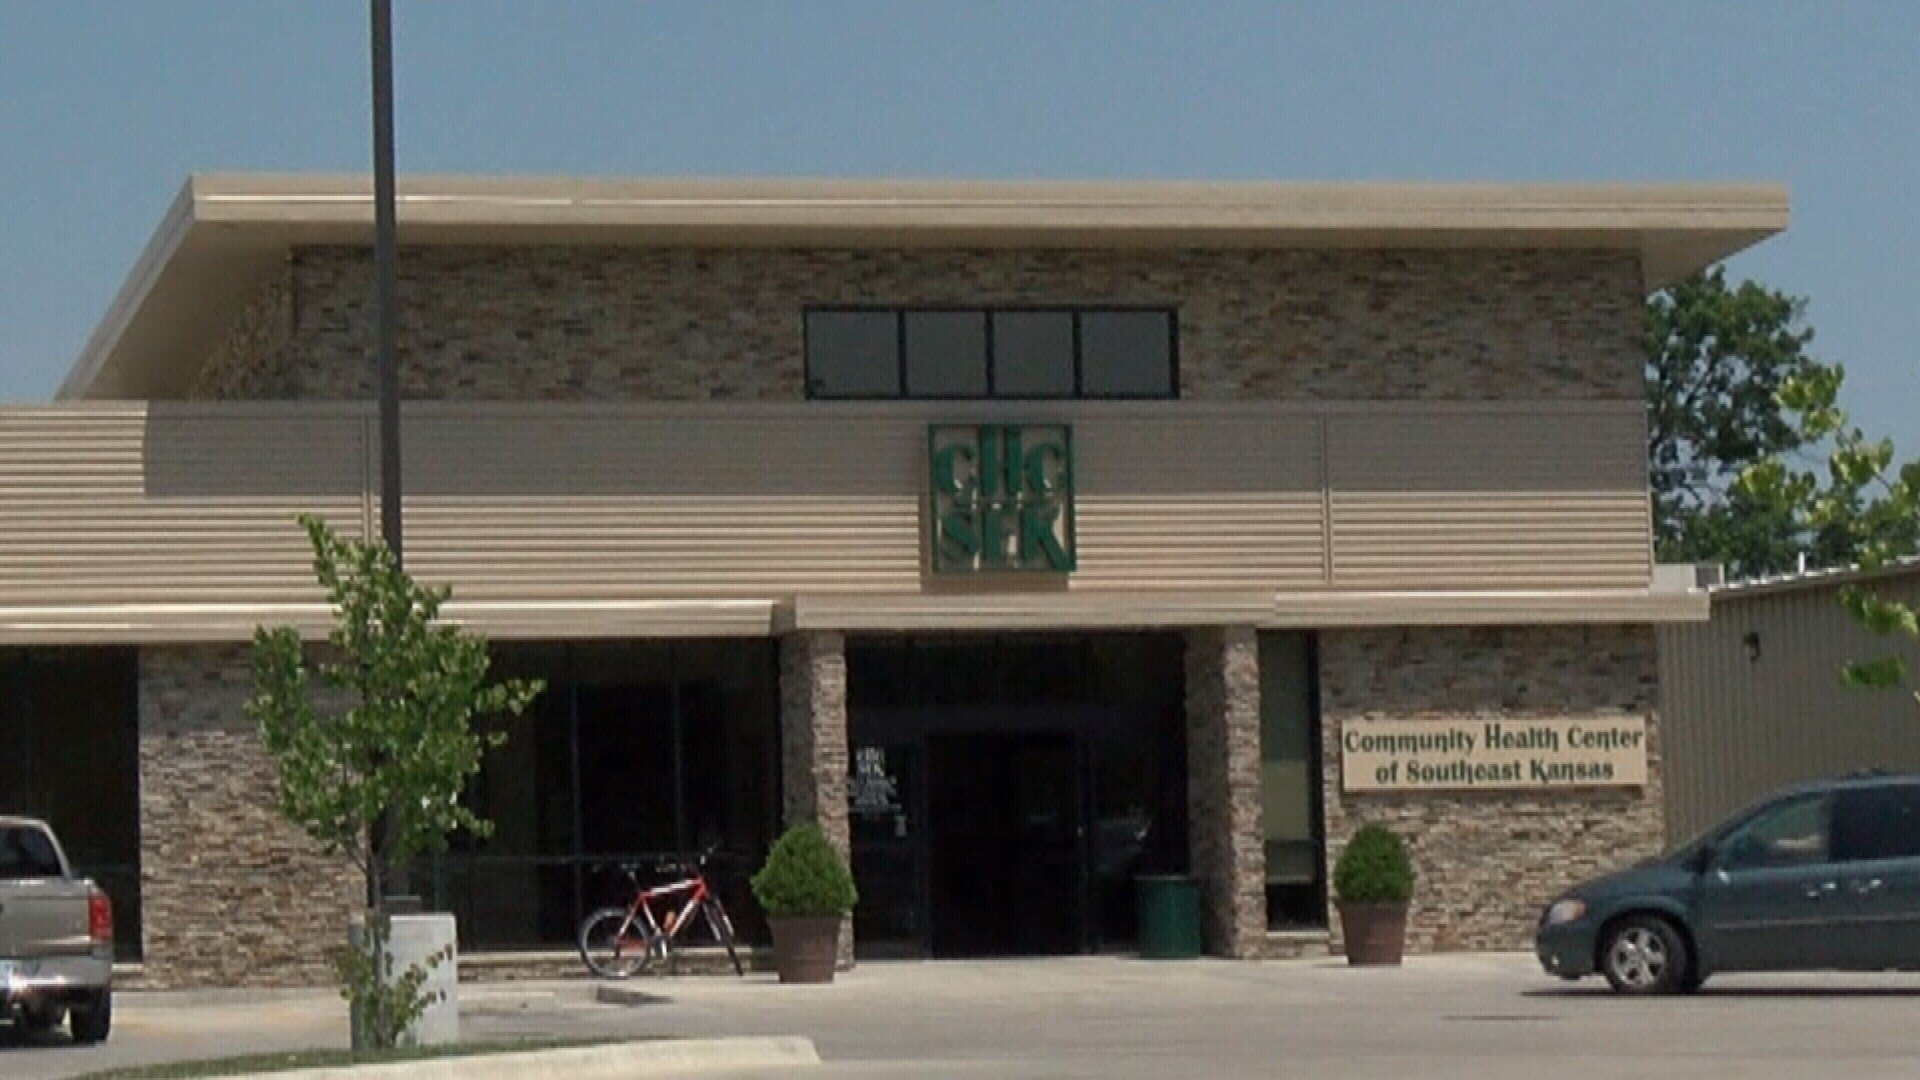 CKC/SEK will assume ownership of Mercy Clinics in Fort Scott, Pleasanton and Arma, KS